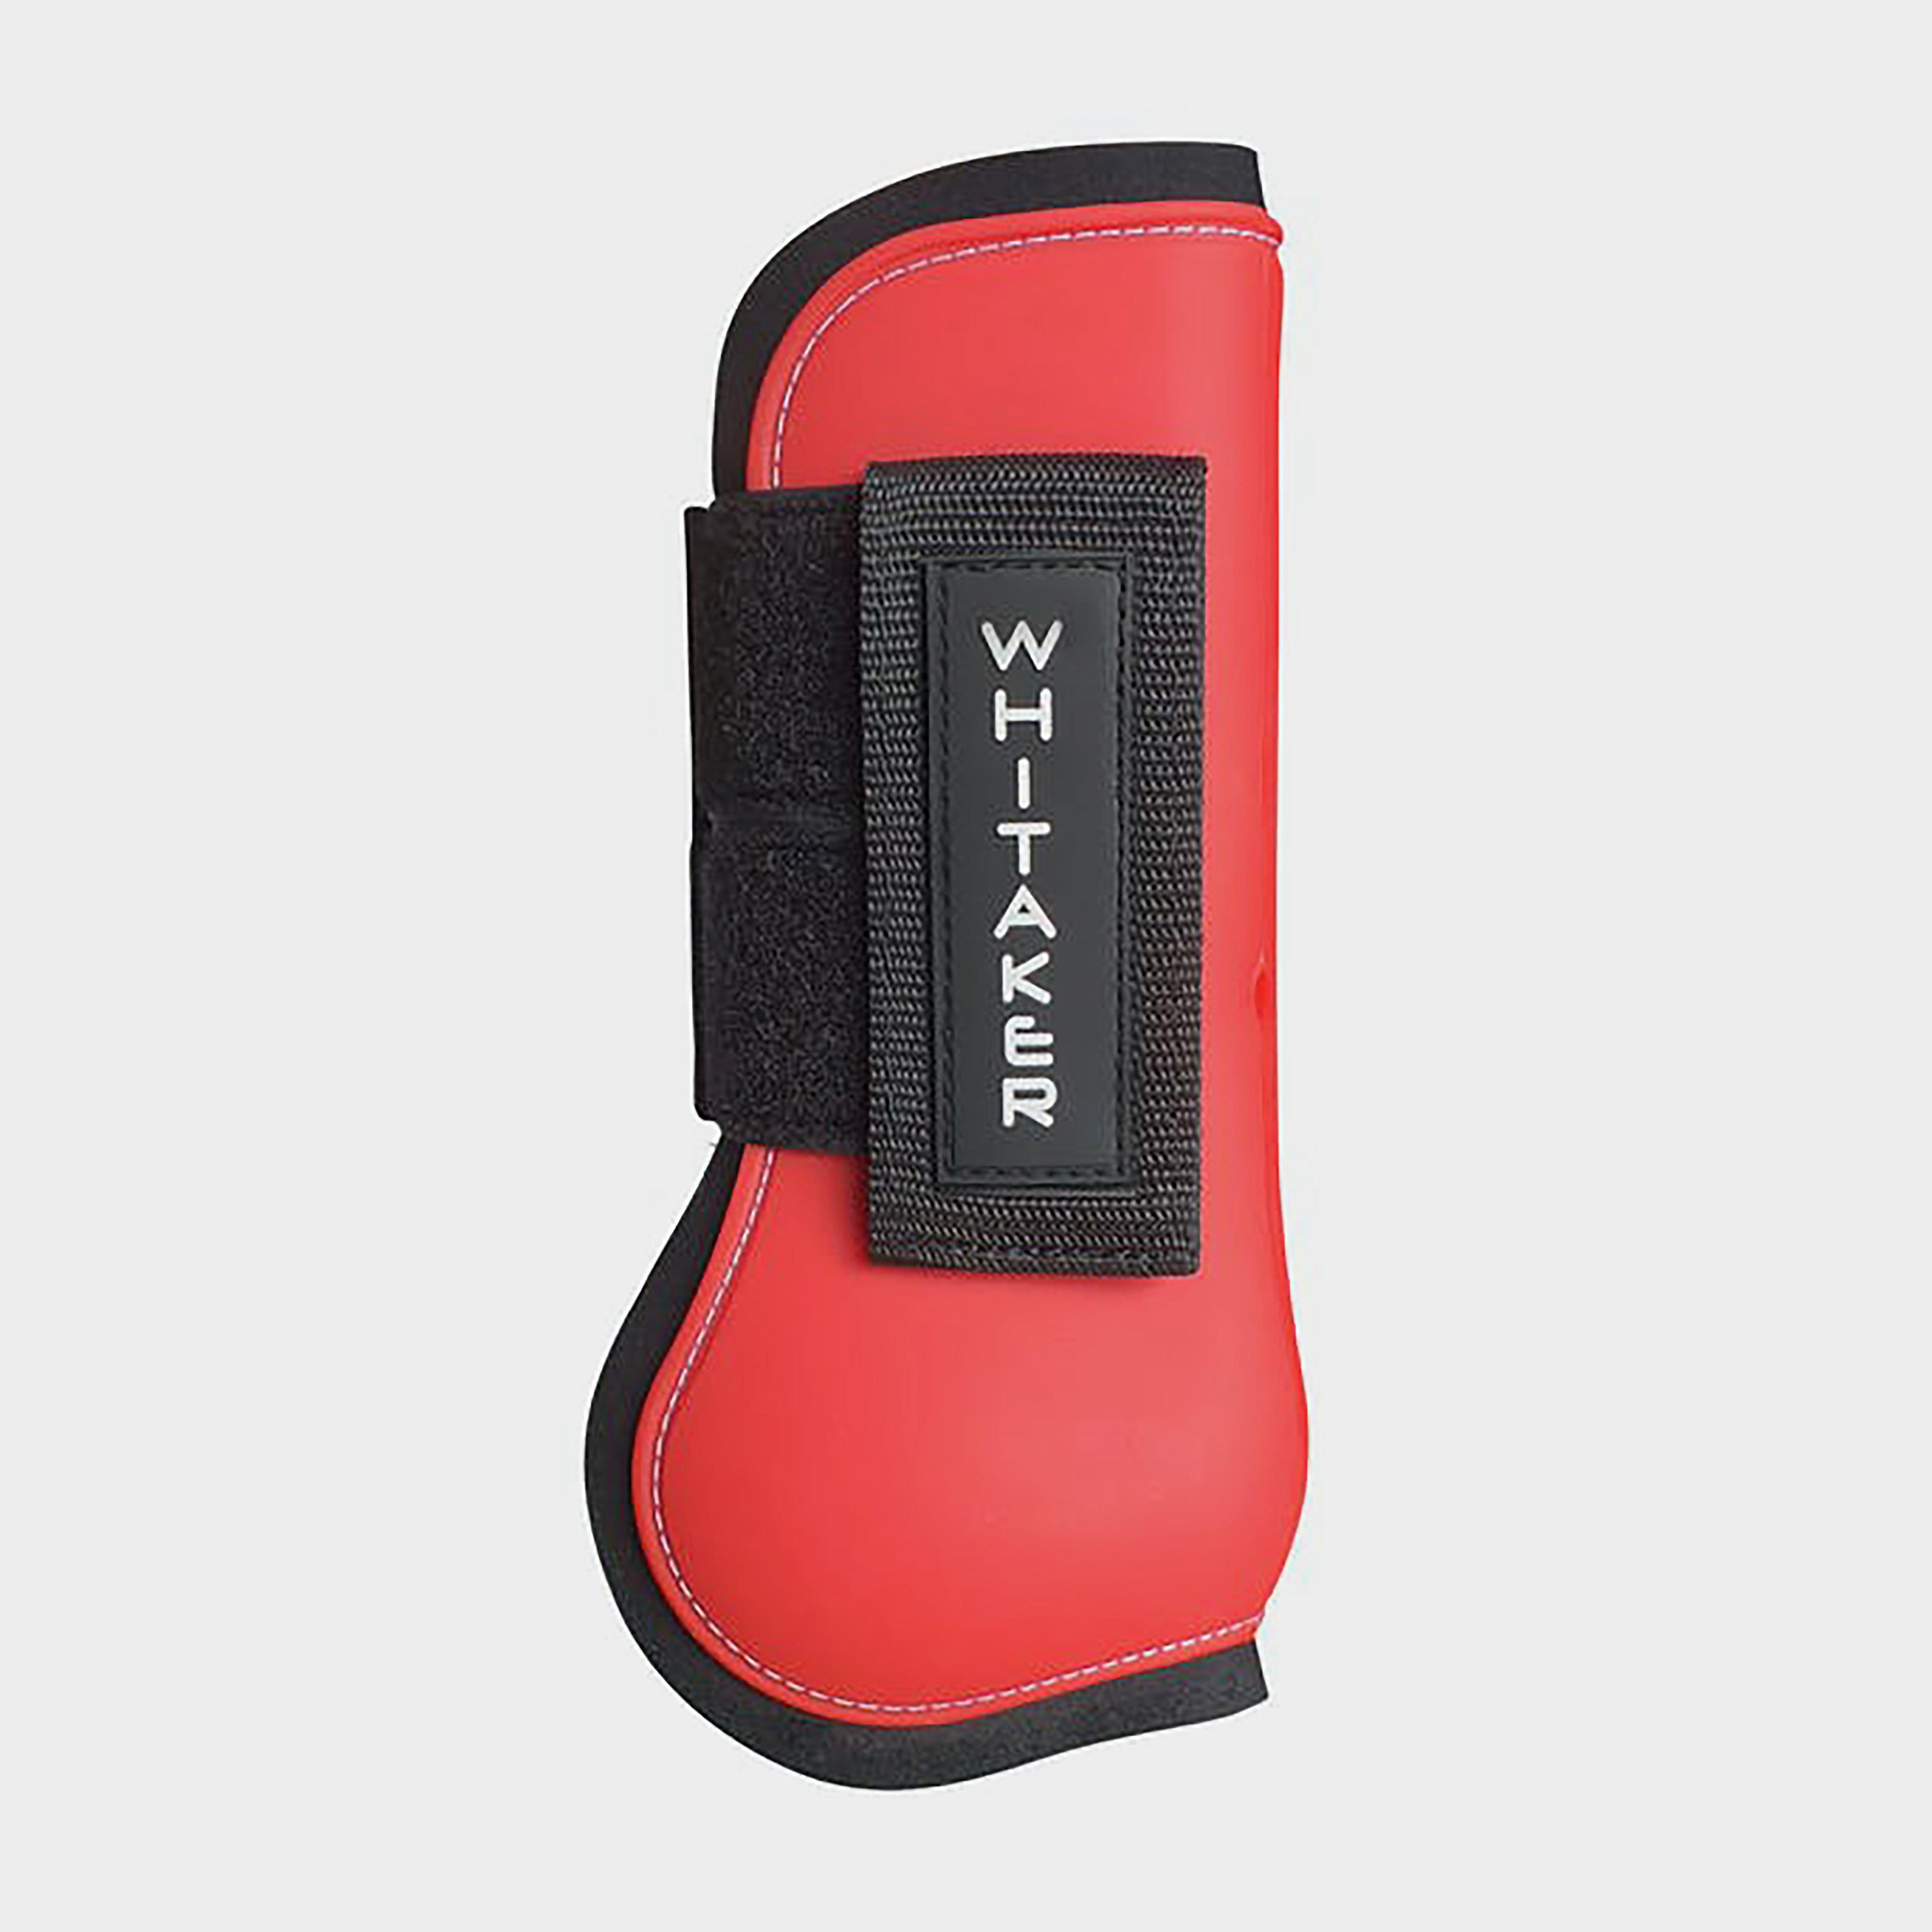 Image of Whitaker Tendon & Fetlock Boot Set - Red/Red, RED/RED